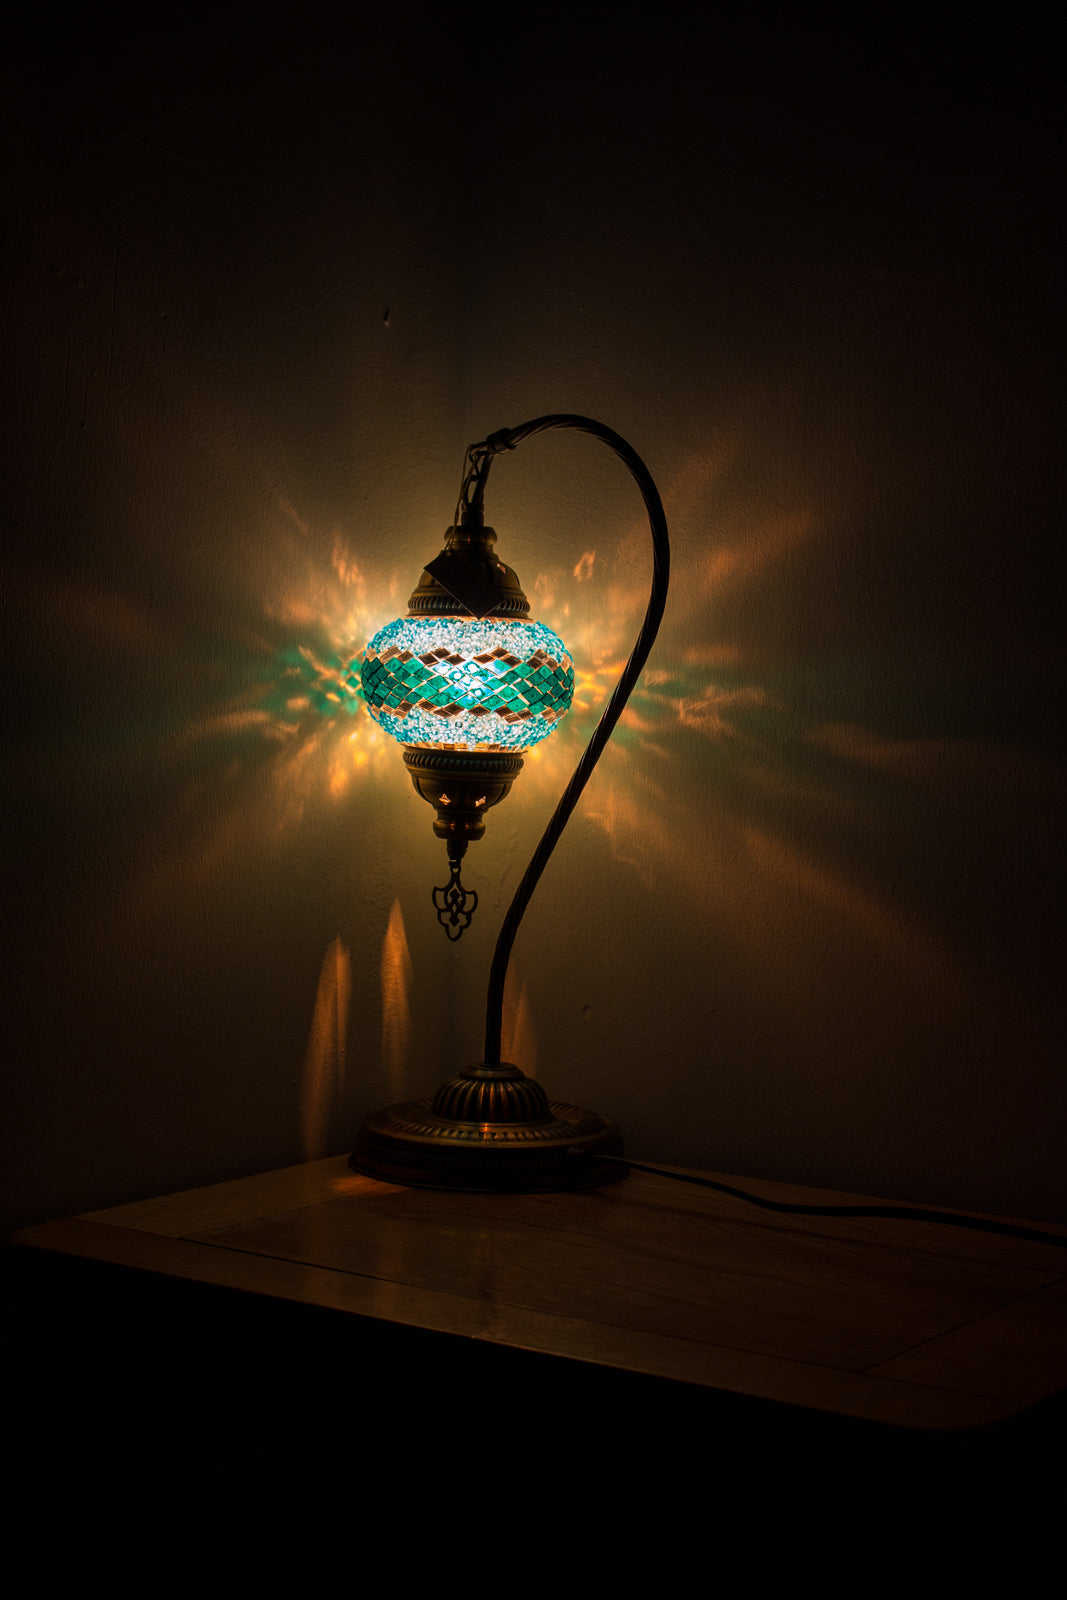 Hand Made Swan Neck Mosaic Table Lamp Size 2 in Turquoise Wicker Design